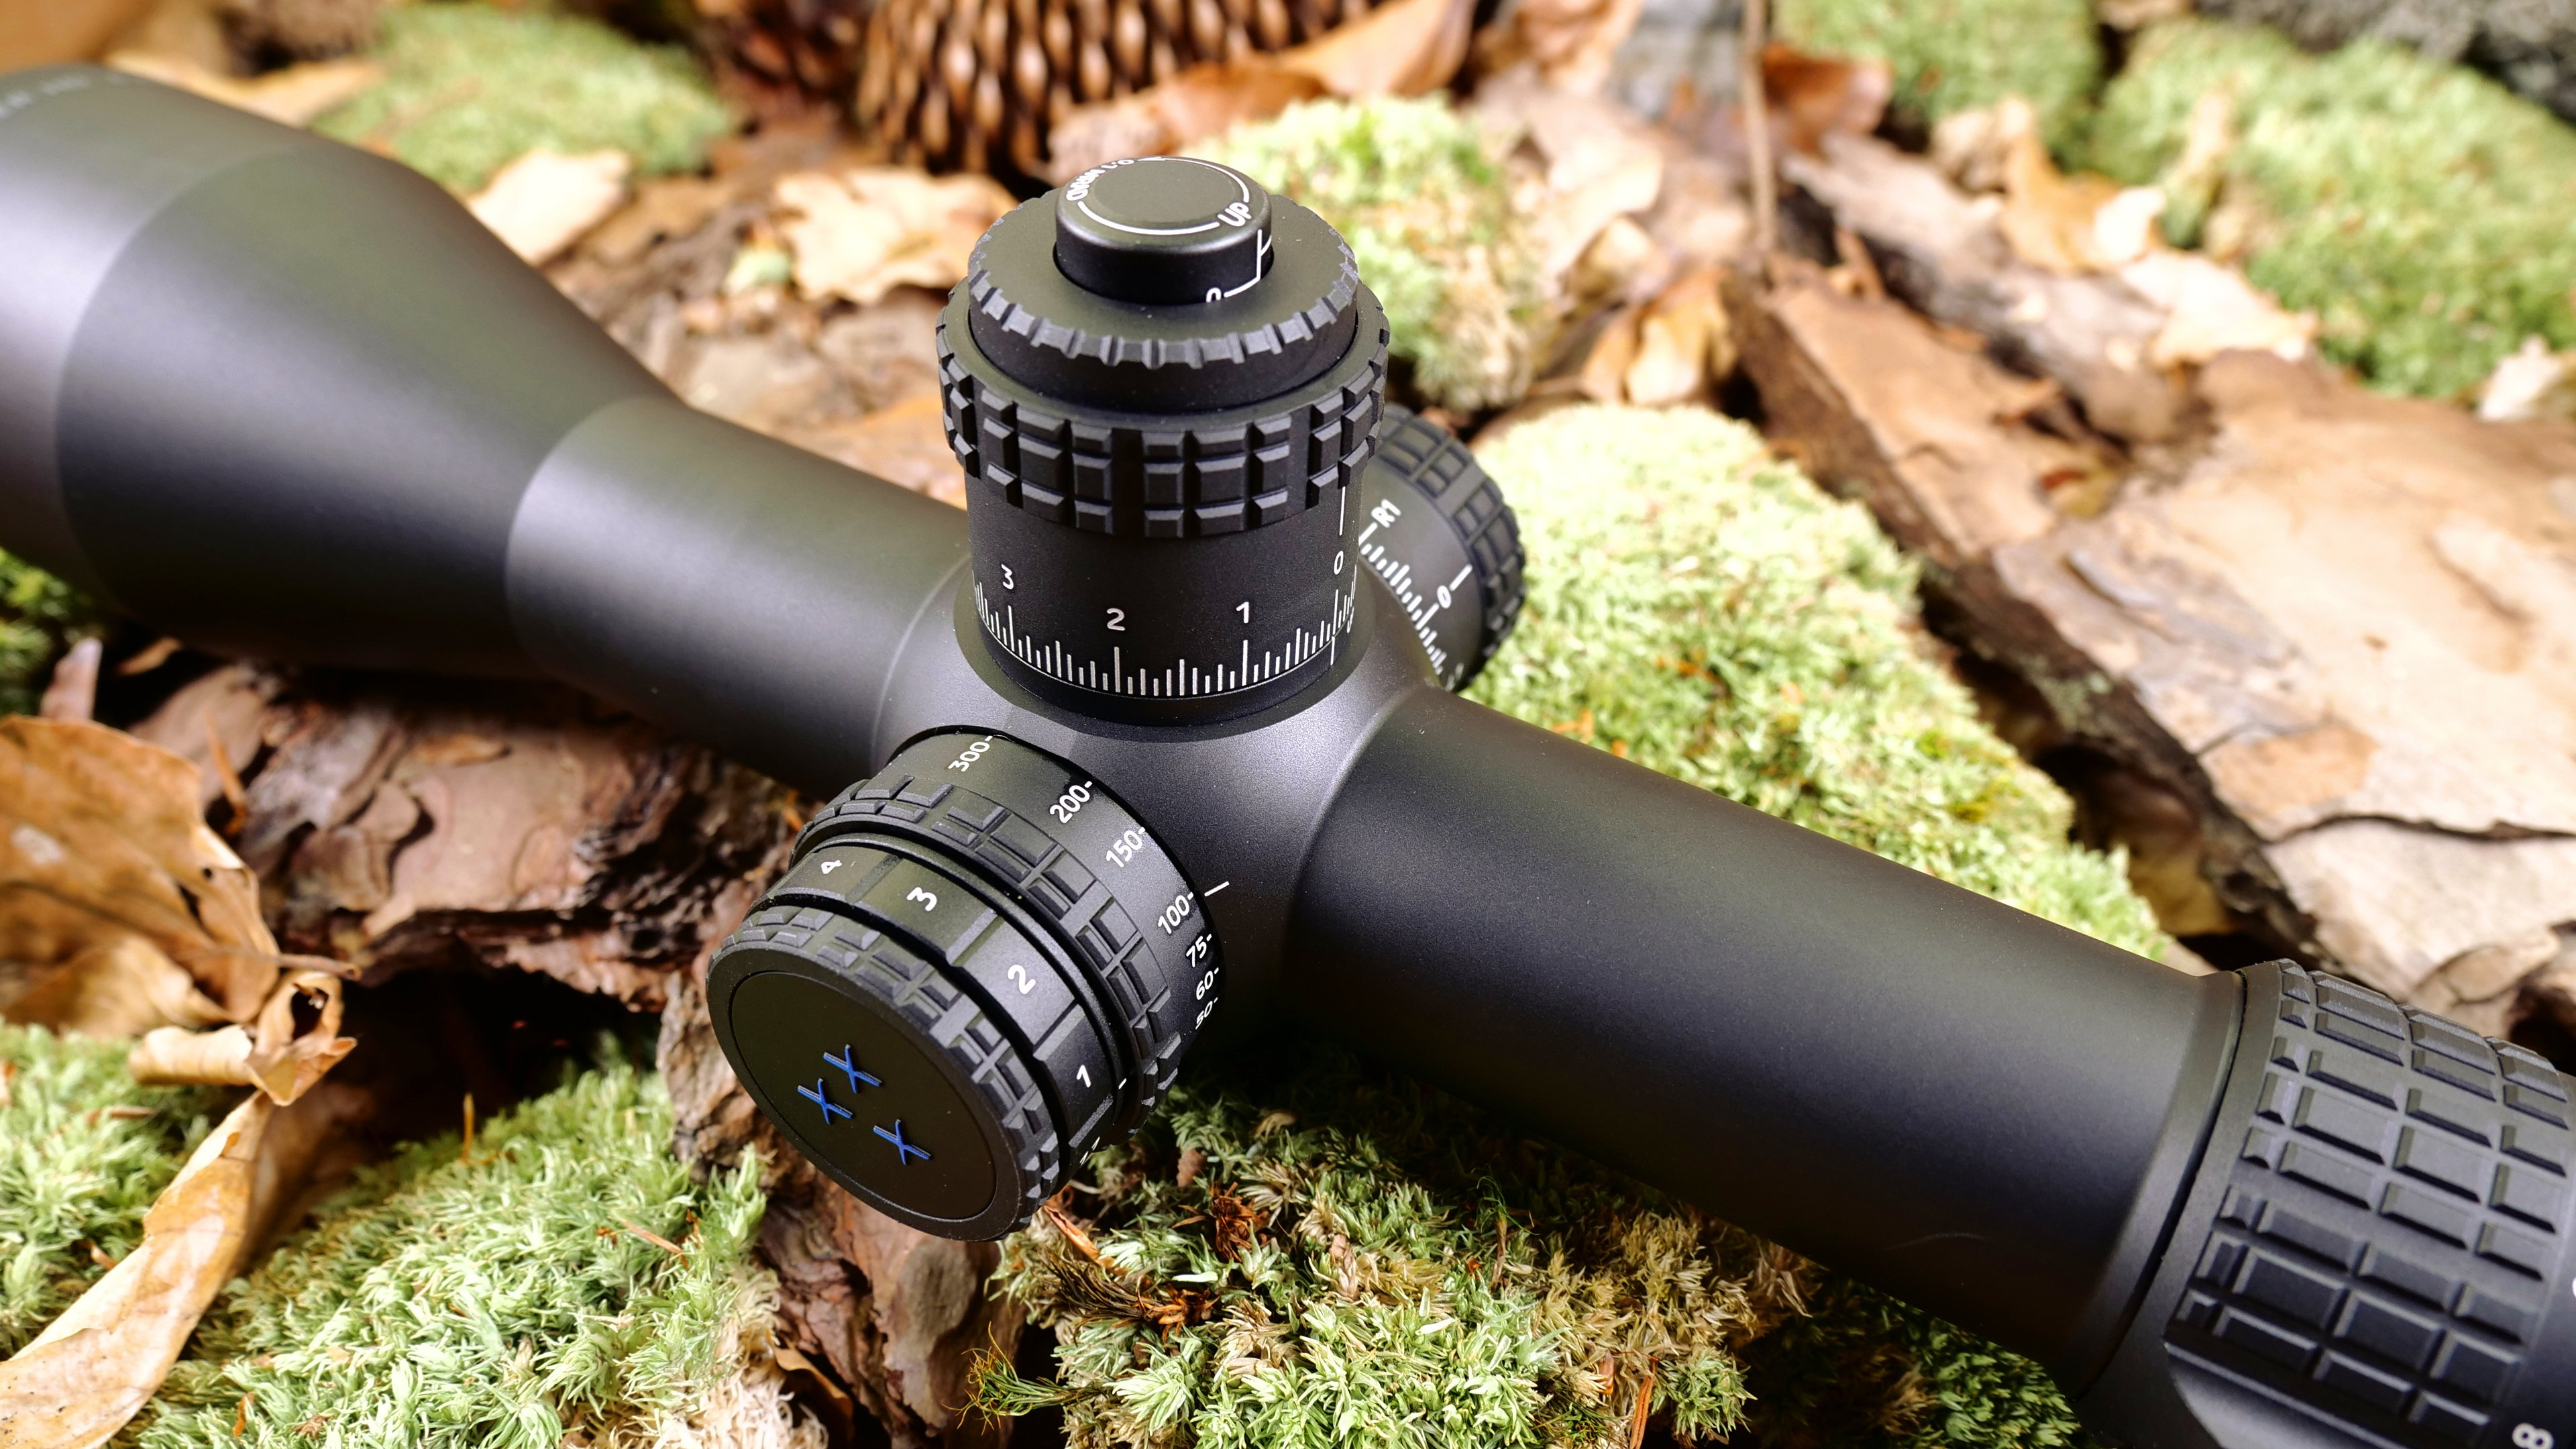 Tactical rifle scope- Delta Stryker scope with illuminated reticle